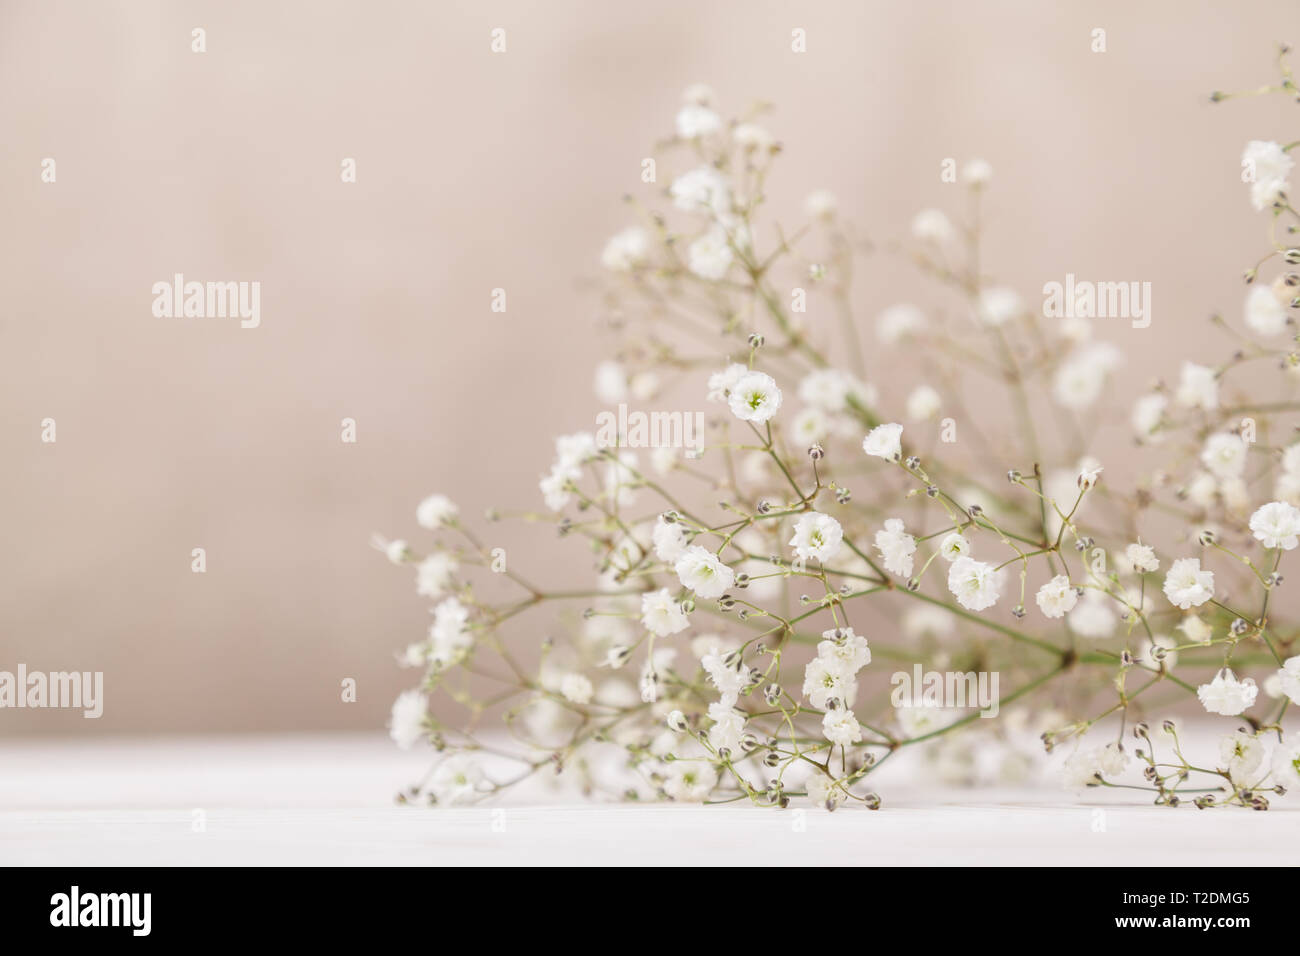 Small white flowers gypsophila on wood table at pale pastel beige background. Minimal lifestyle concept. Copy space. - Stock Image